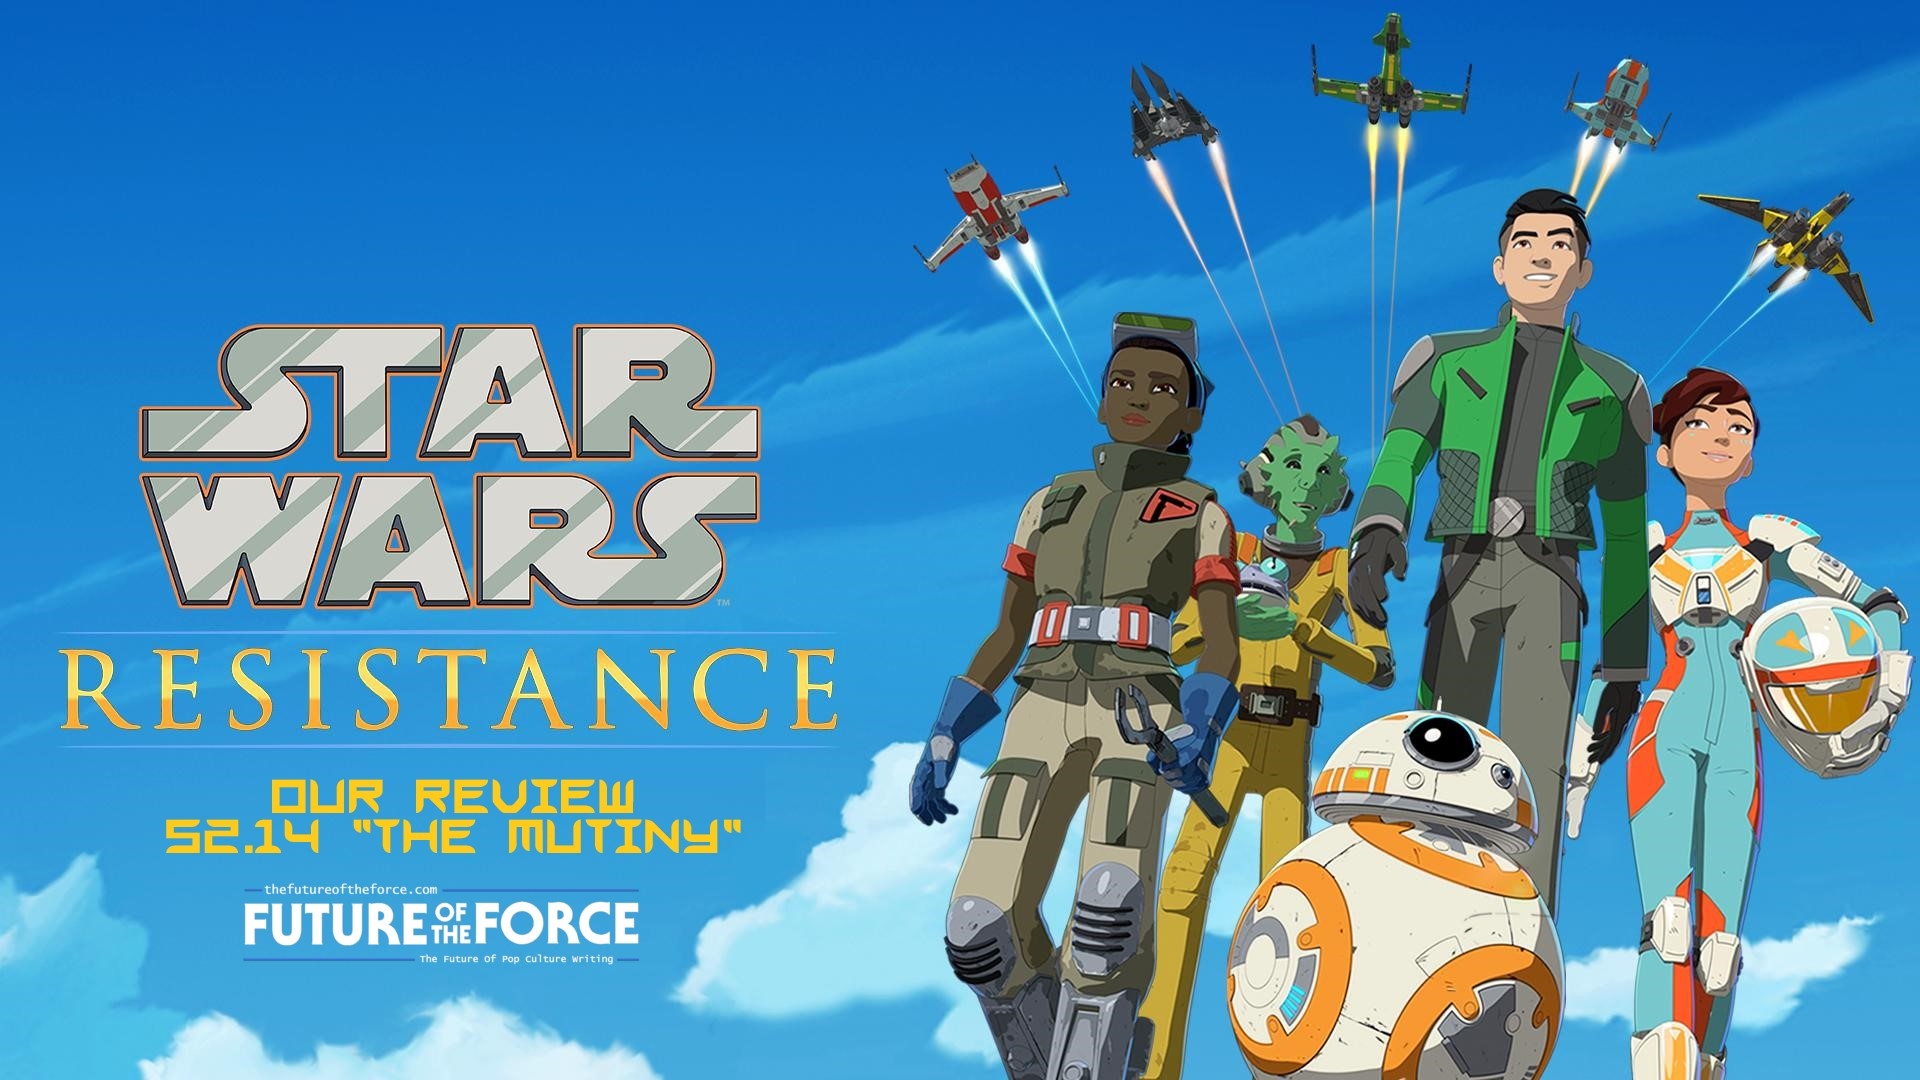 Review Star Wars Resistance The Mutiny Future Of The Force